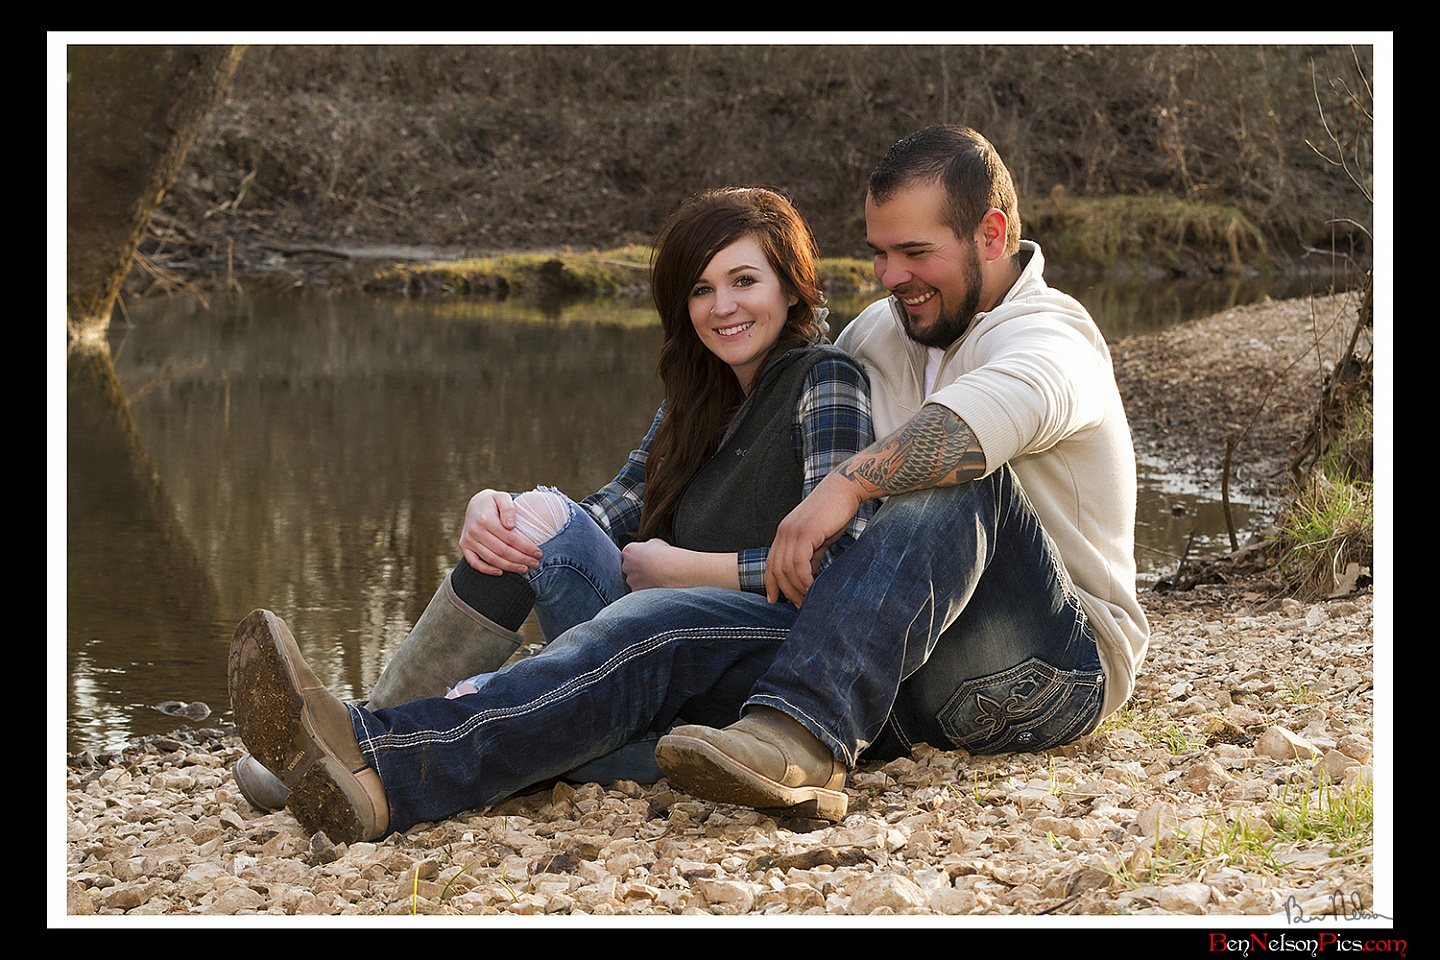 Couples Photos and Engagement Pictures in Springfield Missouri - Couples Photo Taken While They Are Laughing